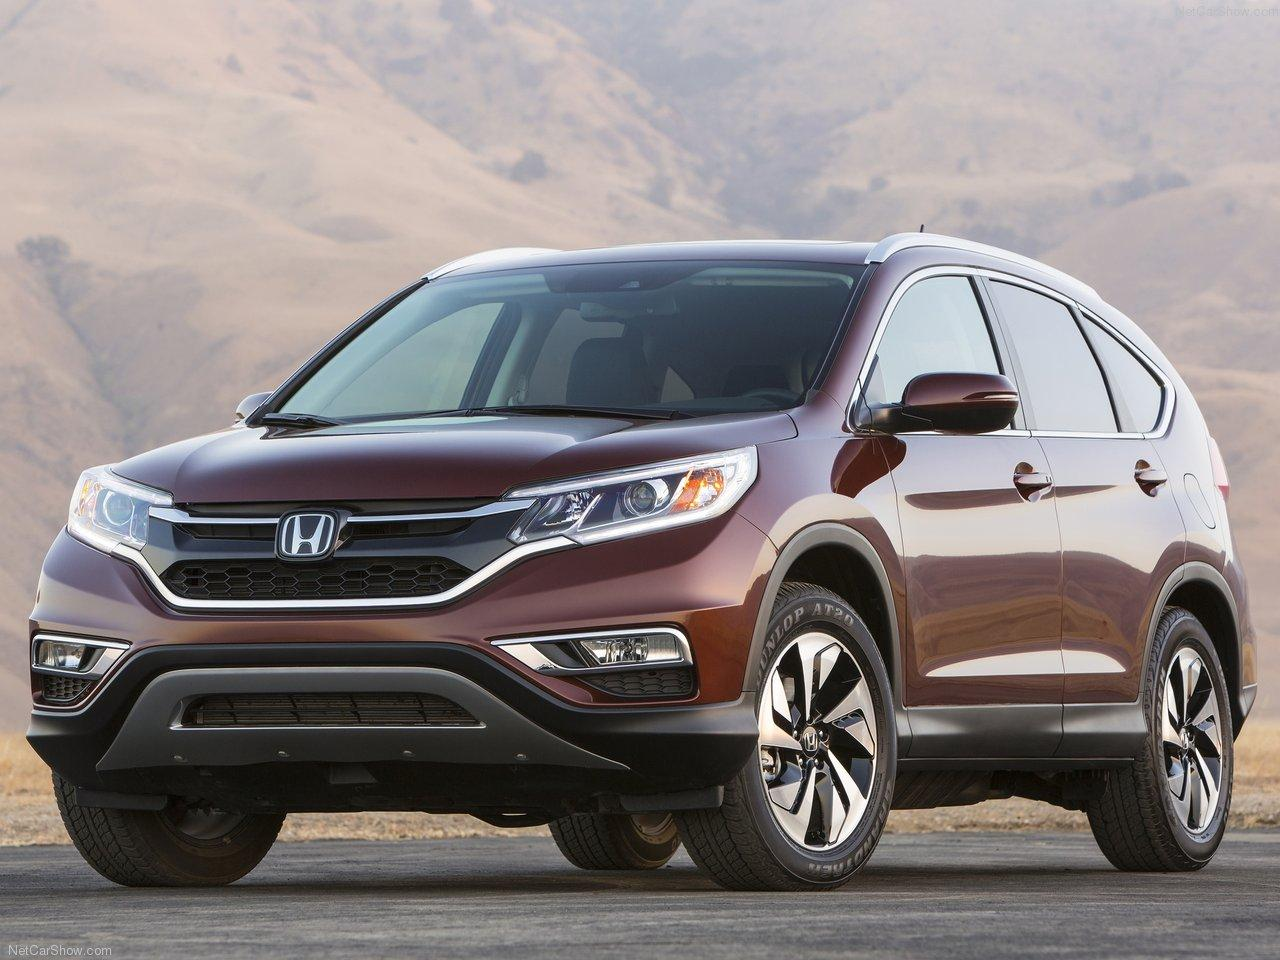 Honda s next generation cr v will grow in size seat seven and add a premium touch